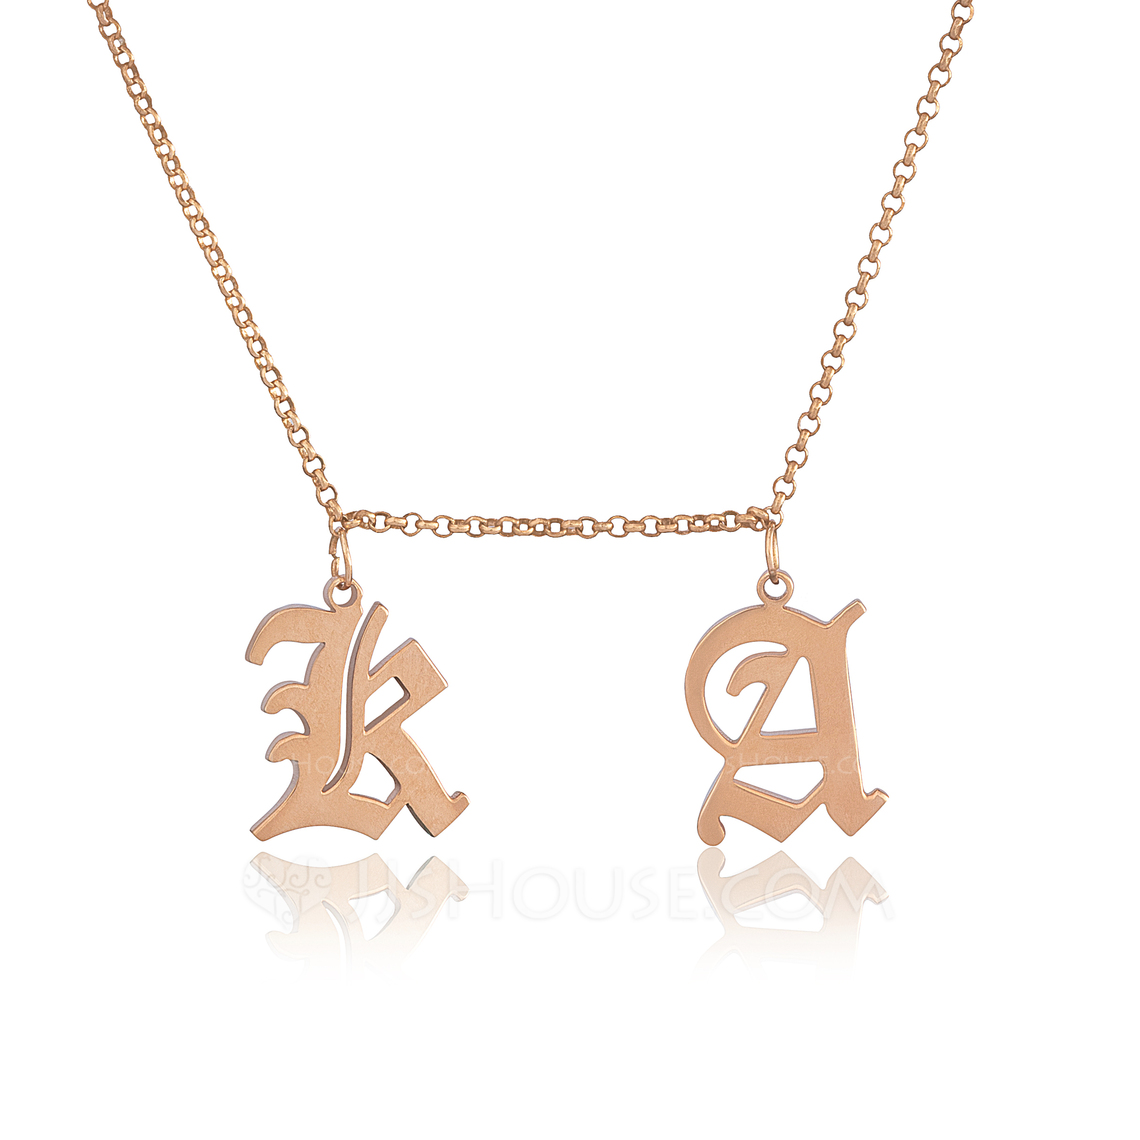 Custom 18k Rose Gold Plated Silver Letter Old English Two Initial Necklace - Birthday Gifts Mother's Day Gifts